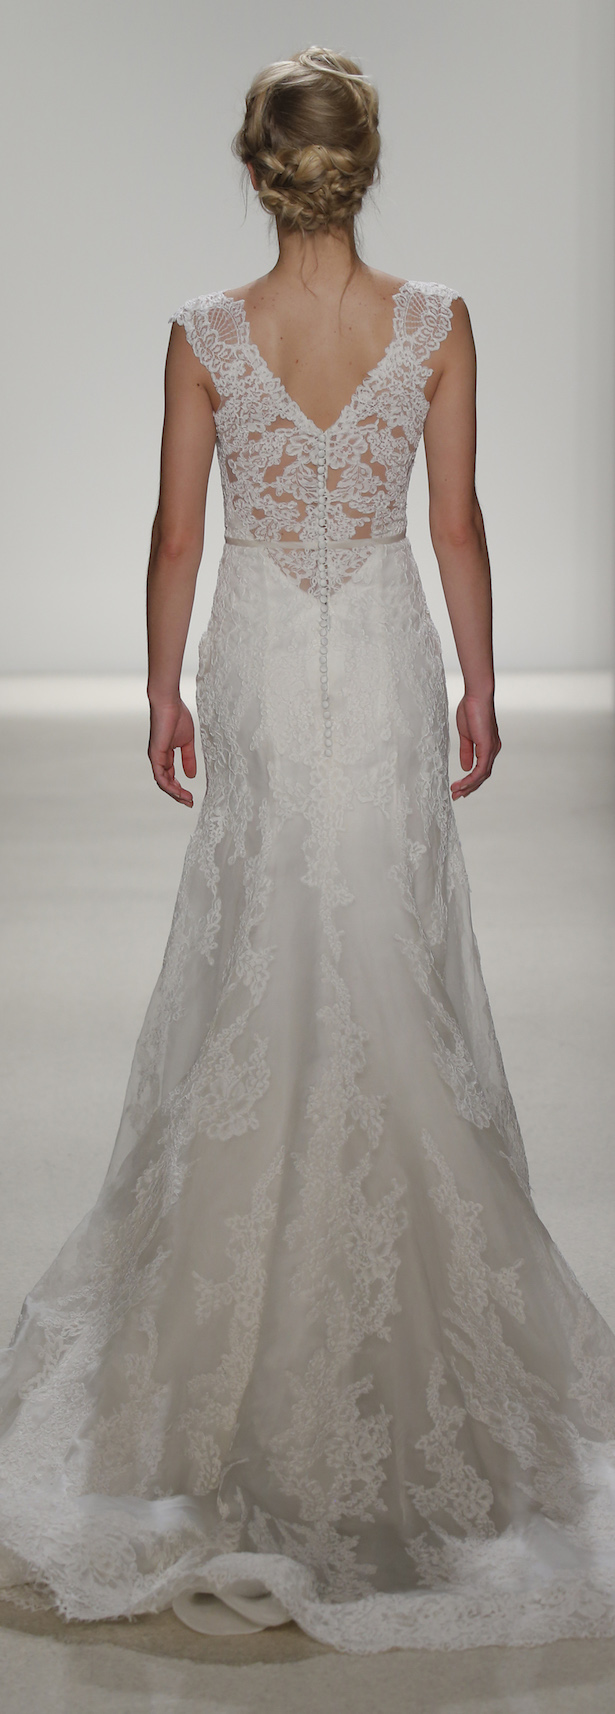 Wedding Dress by Kelly Faetanini Spring 2018 - VIOLA